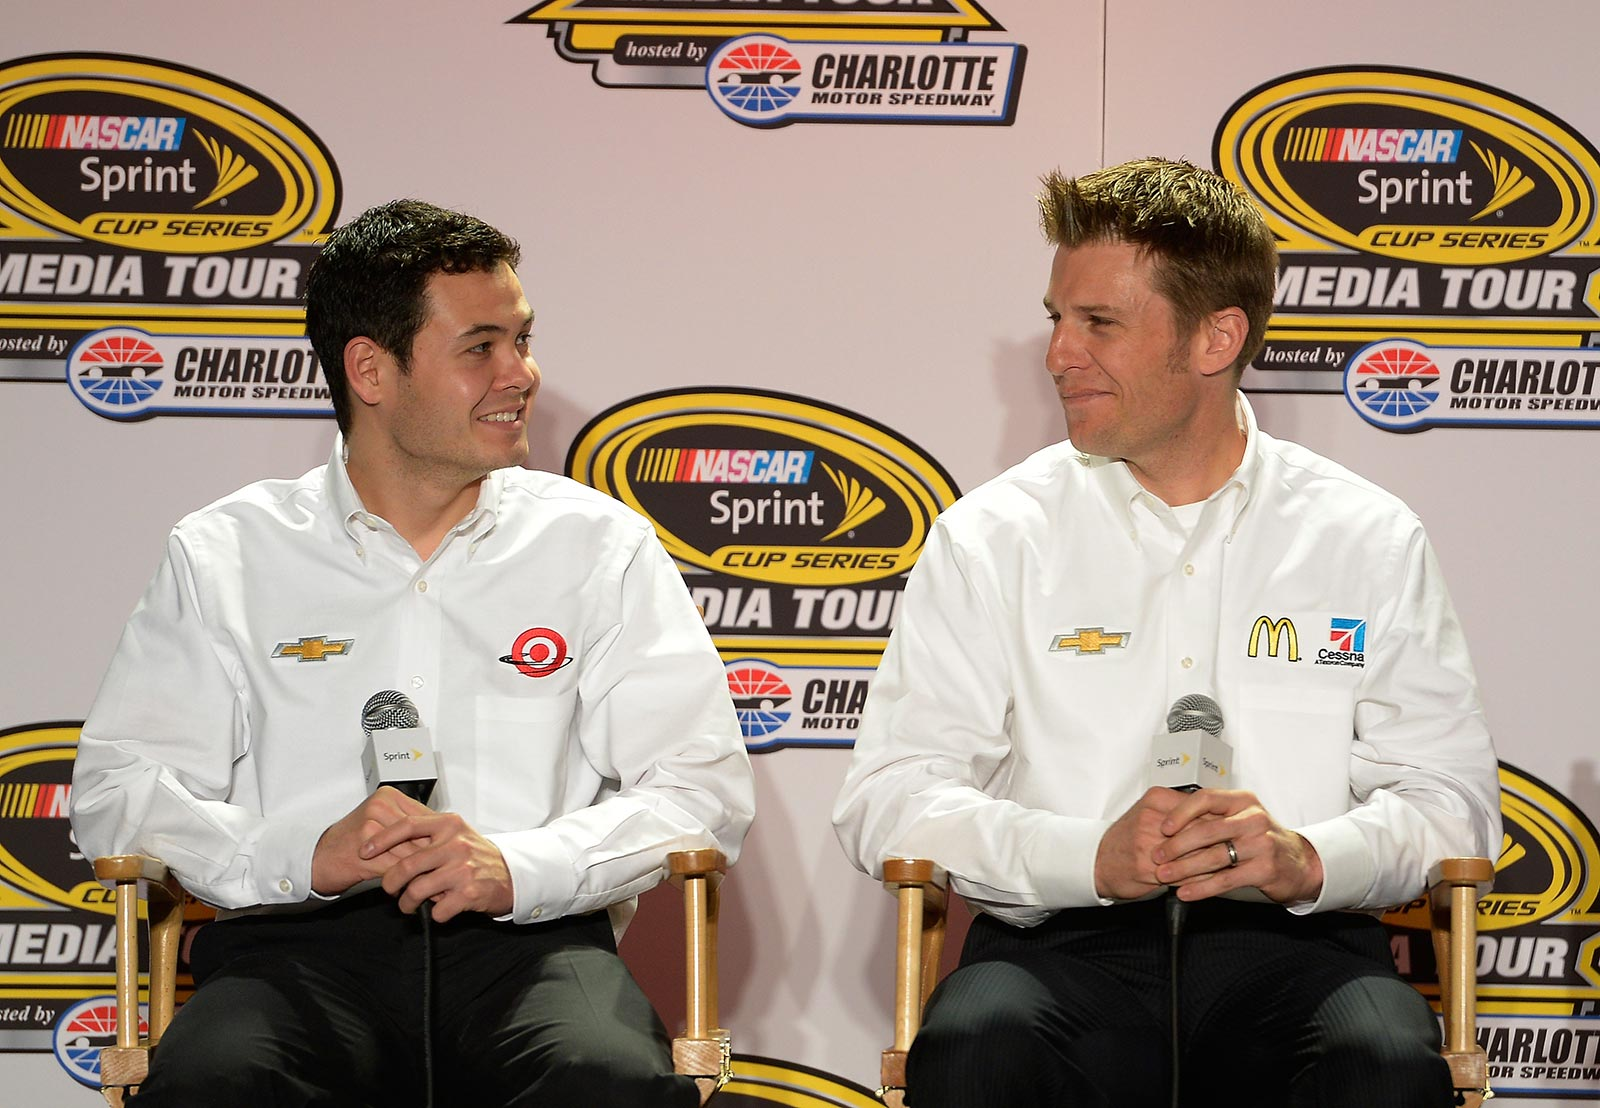 sprint-media-tour-ganassi-driver-mcmurray-larson